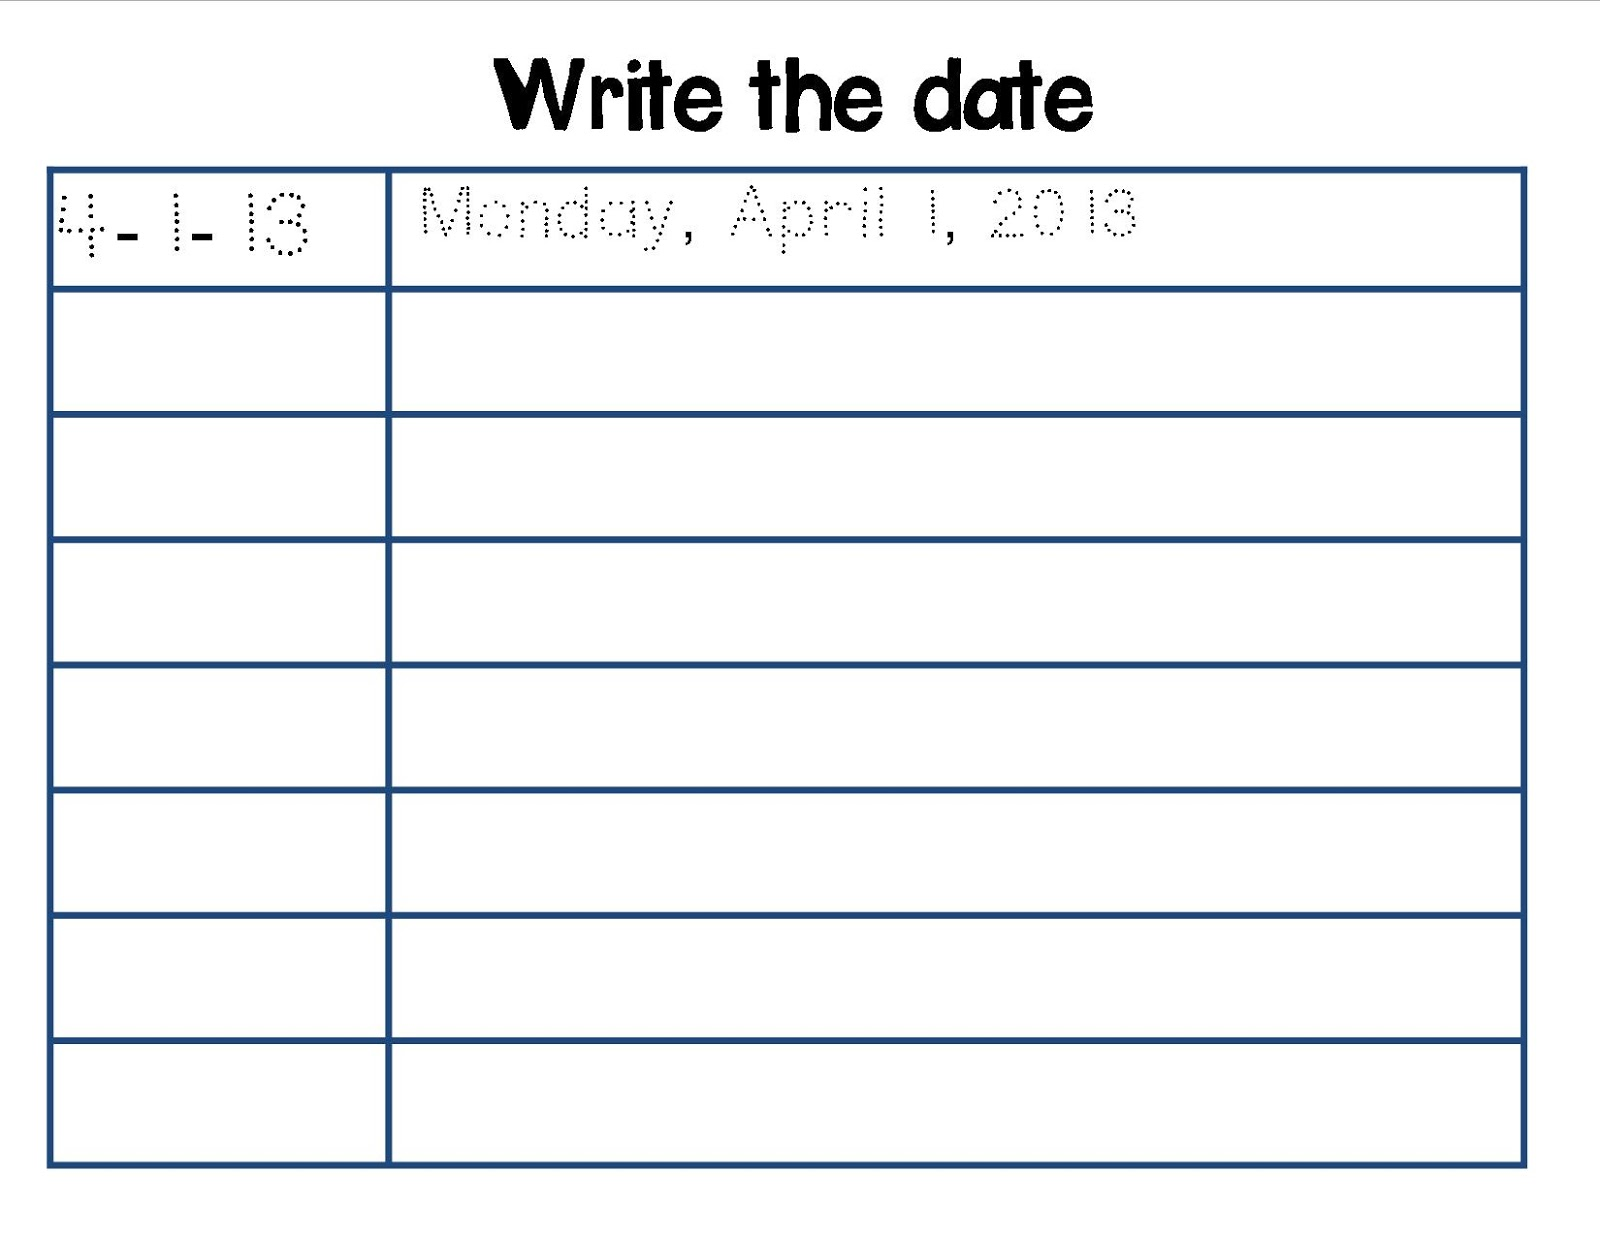 Writing adapted screenplay 2013 calendar